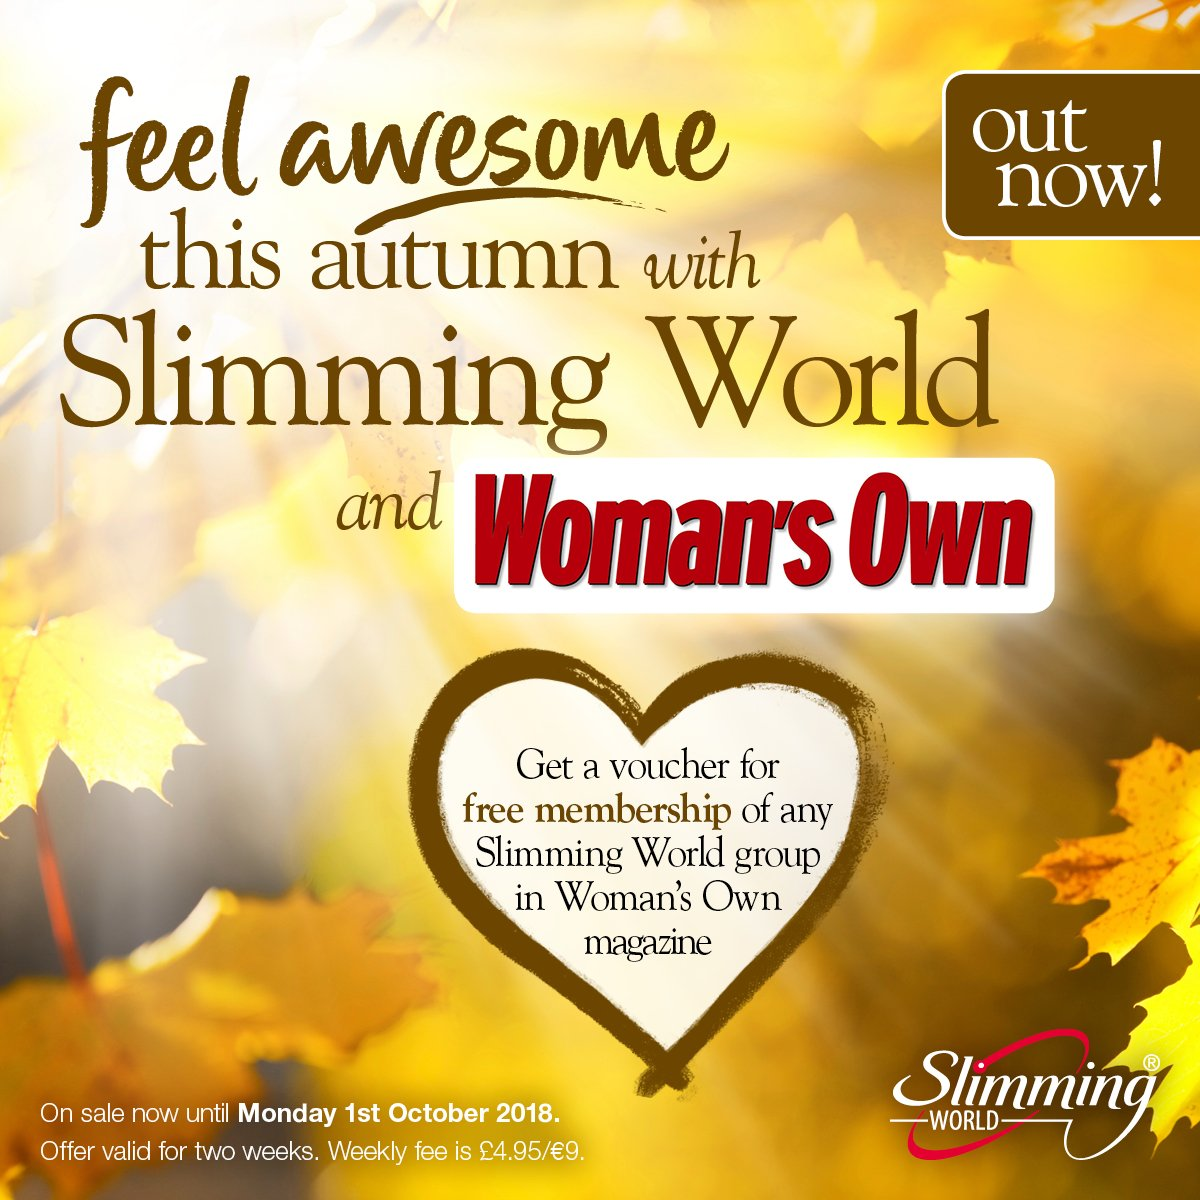 Pick up this week's Woman's Own (out today!) and grab your voucher for FREE membership to your local  group!